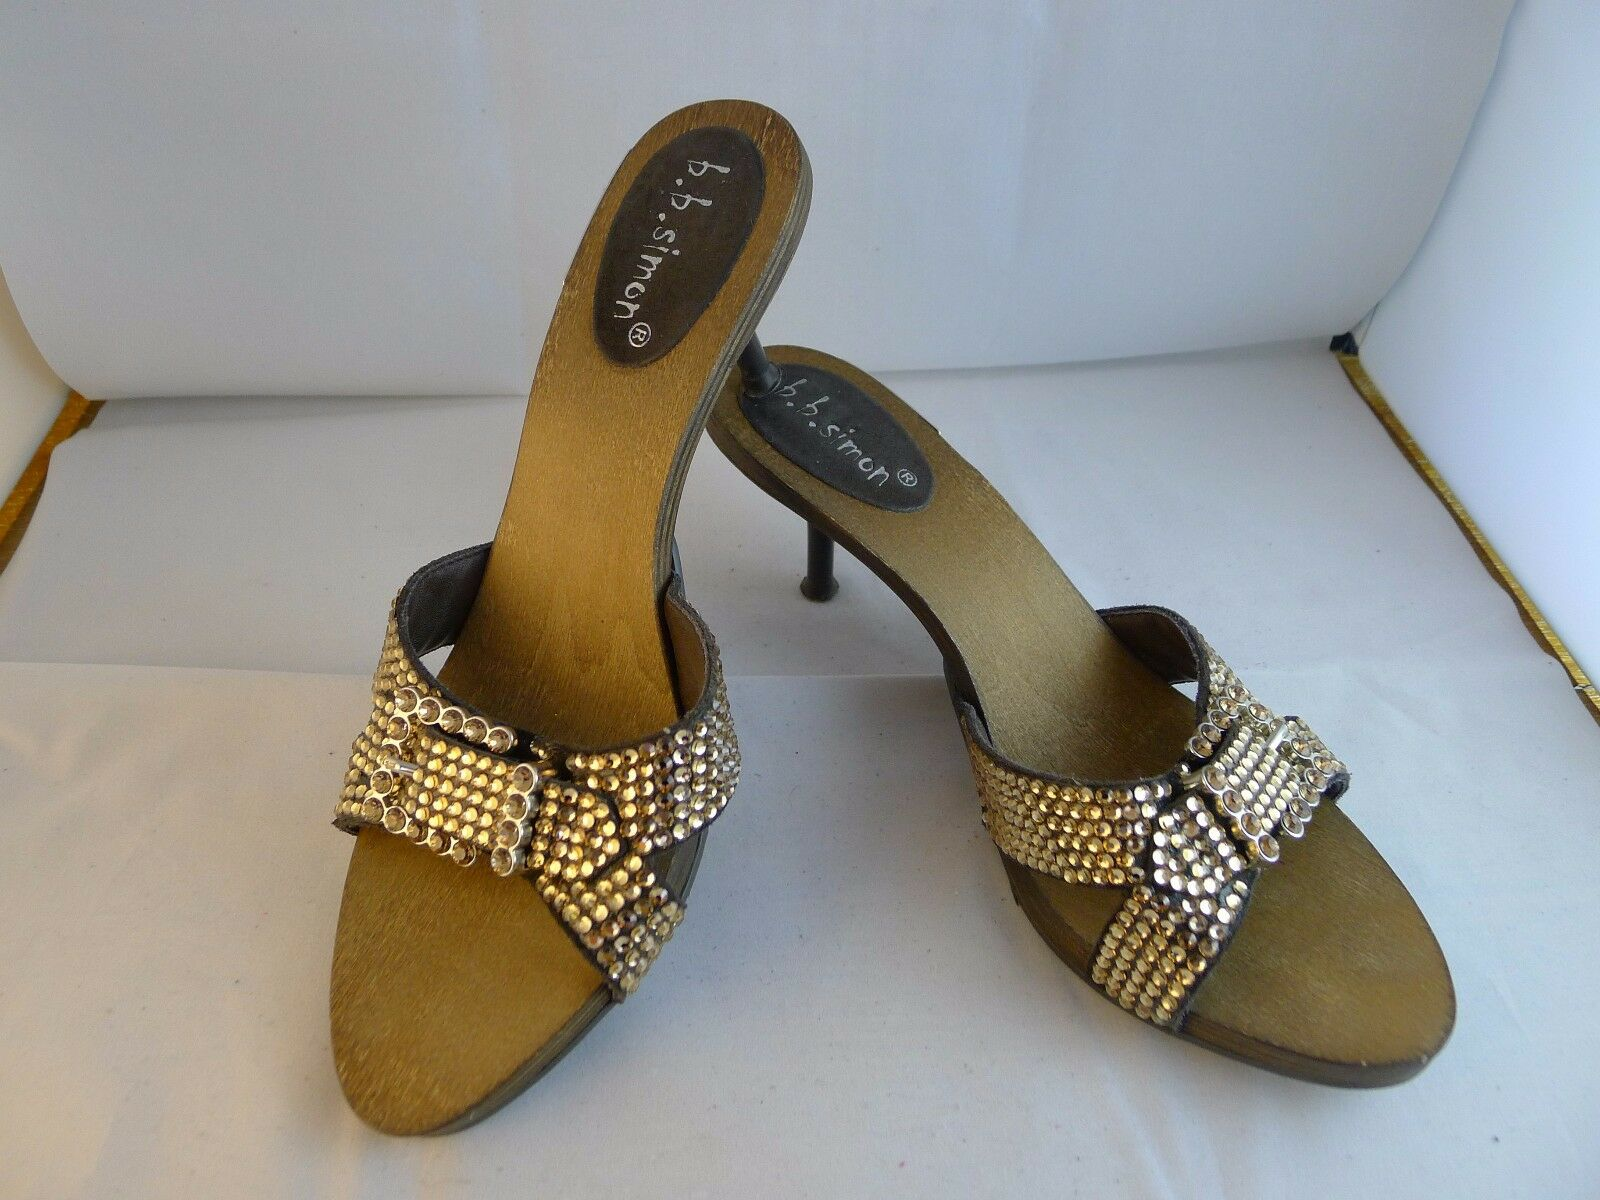 b.b.simon gold crystal heeled sandals size 8